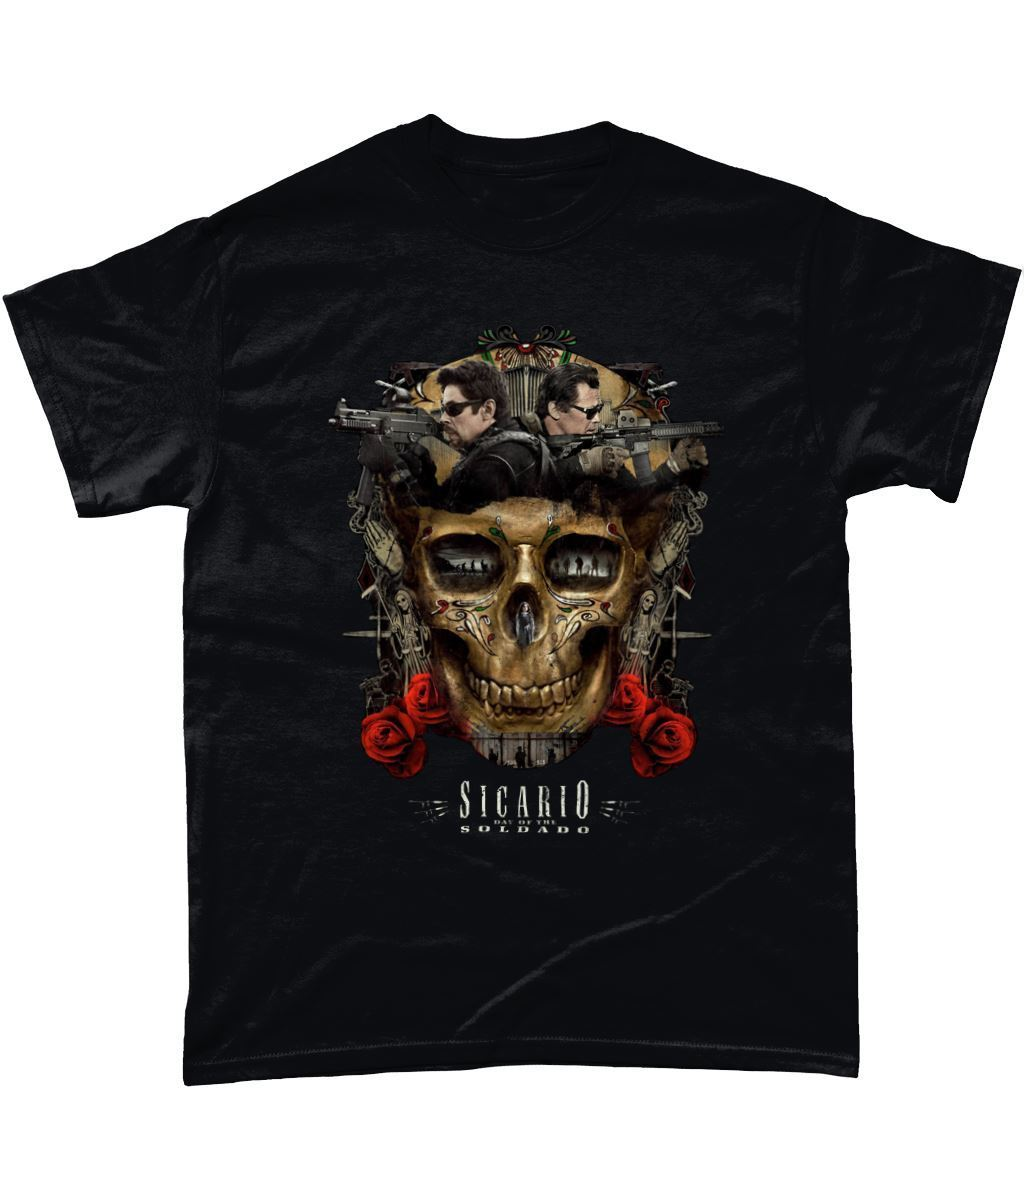 T-Shirt - Inspired by the new Movie Sequel Sicario: Day of the Soldado New T Shirts Funny Tops Tee New Unisex